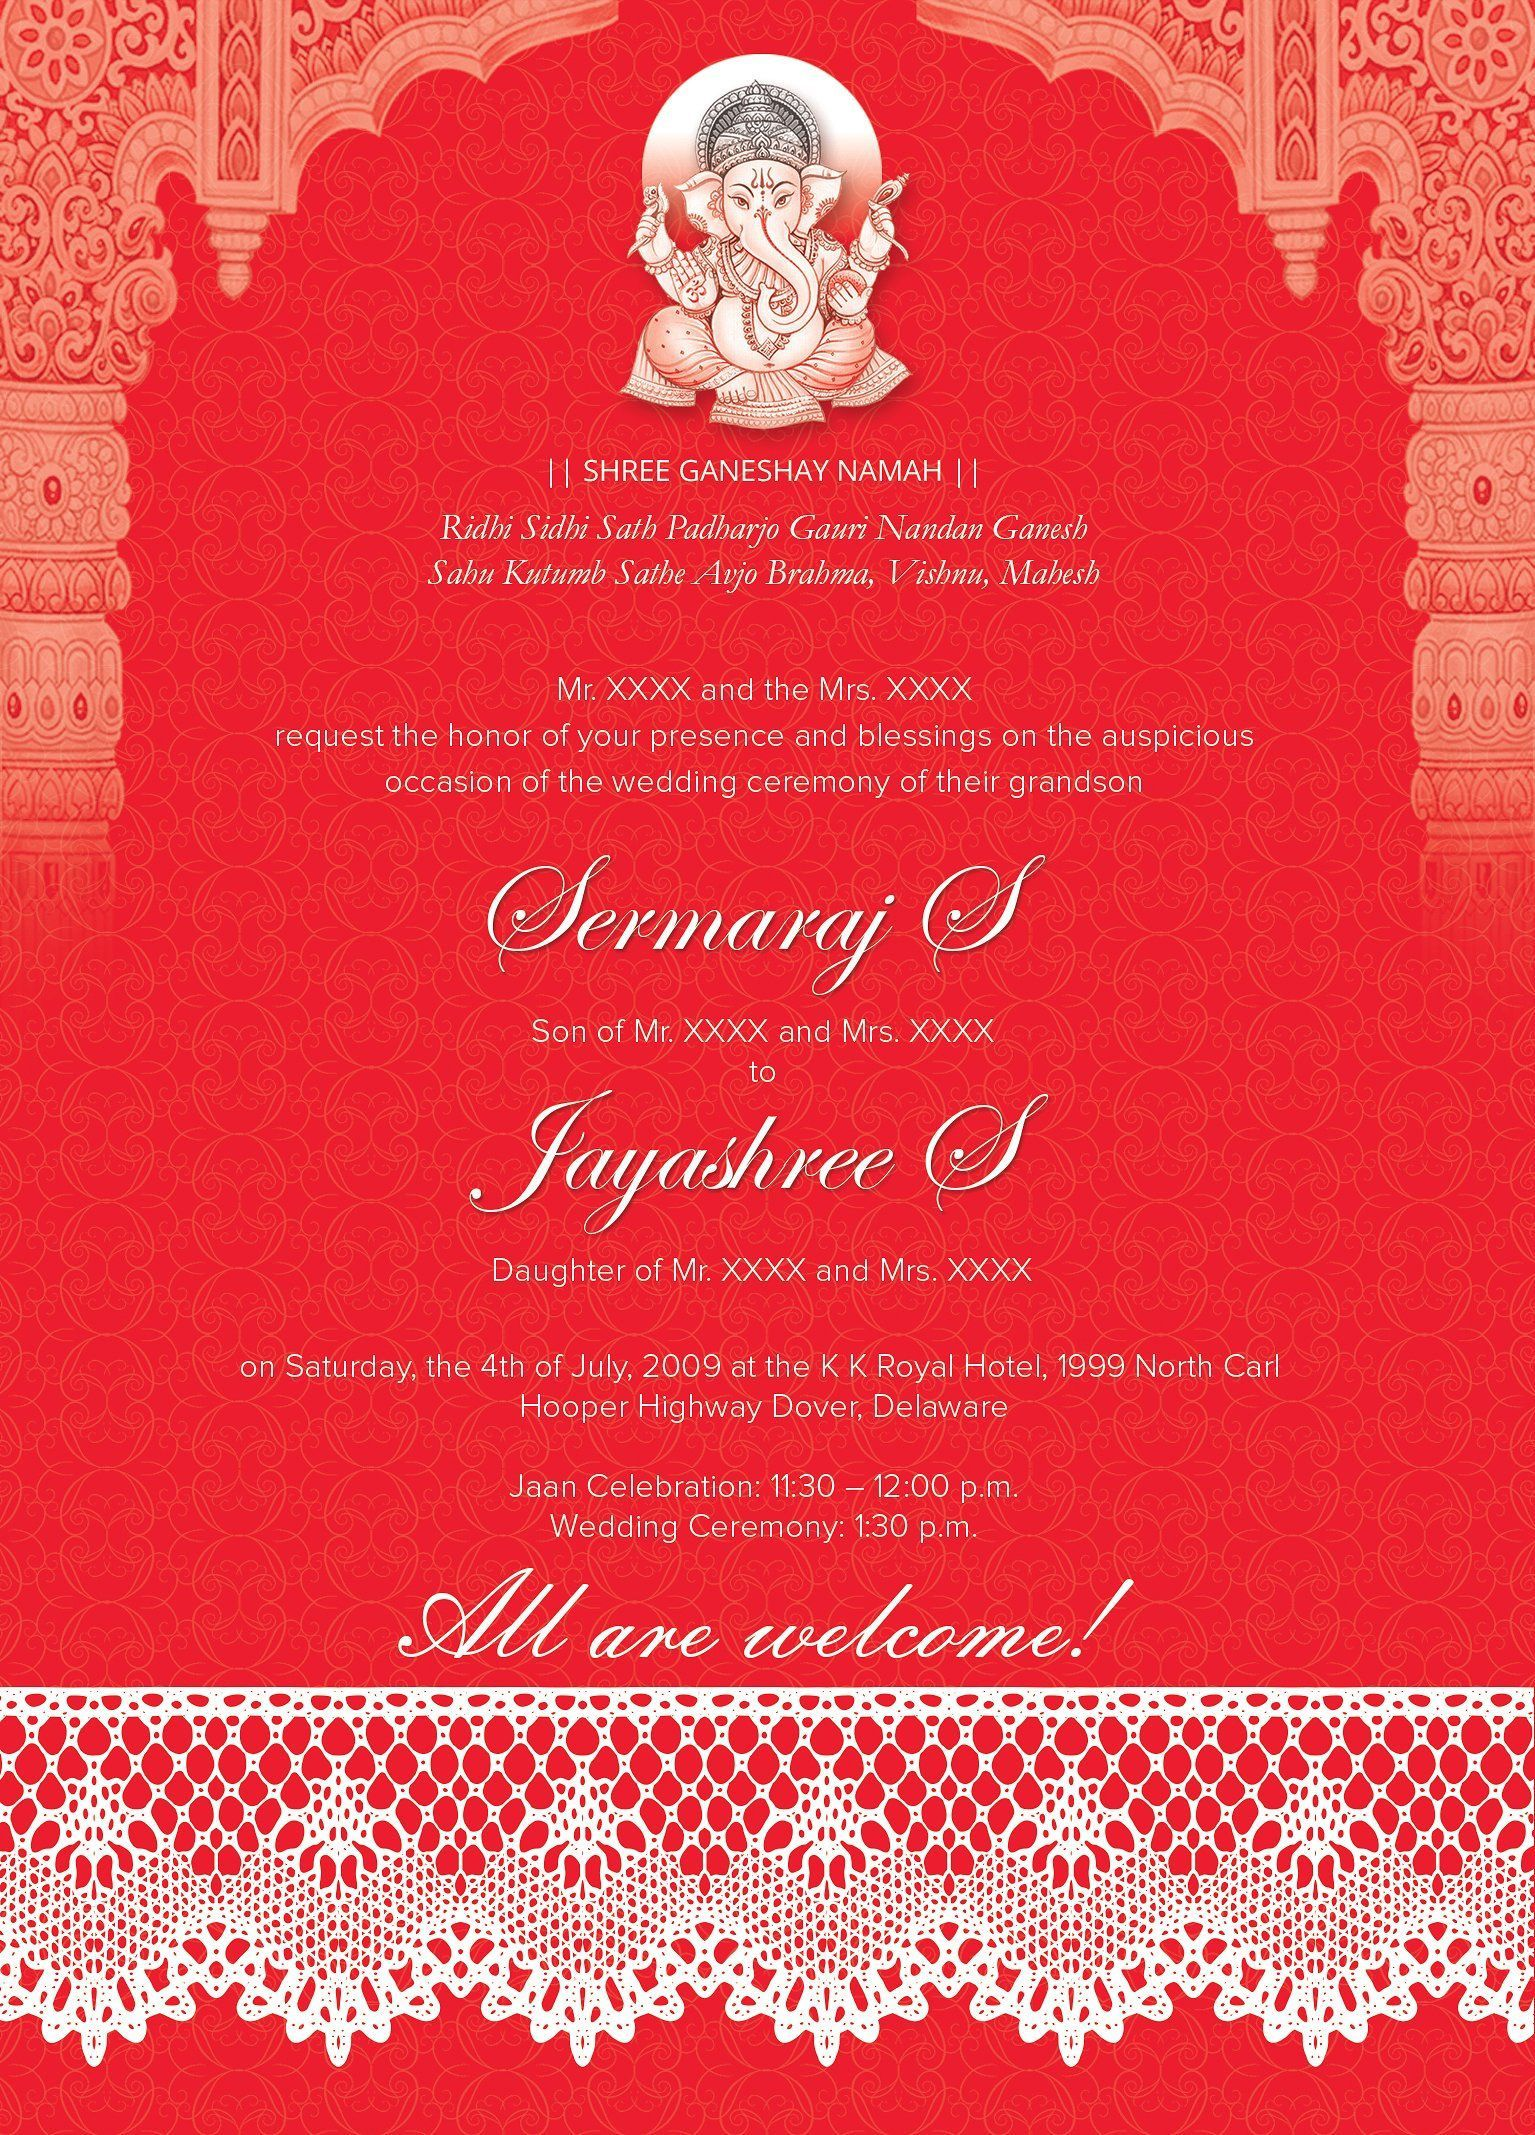 005 Marvelou Free Online Indian Wedding Invitation Card Template Image  TemplatesFull